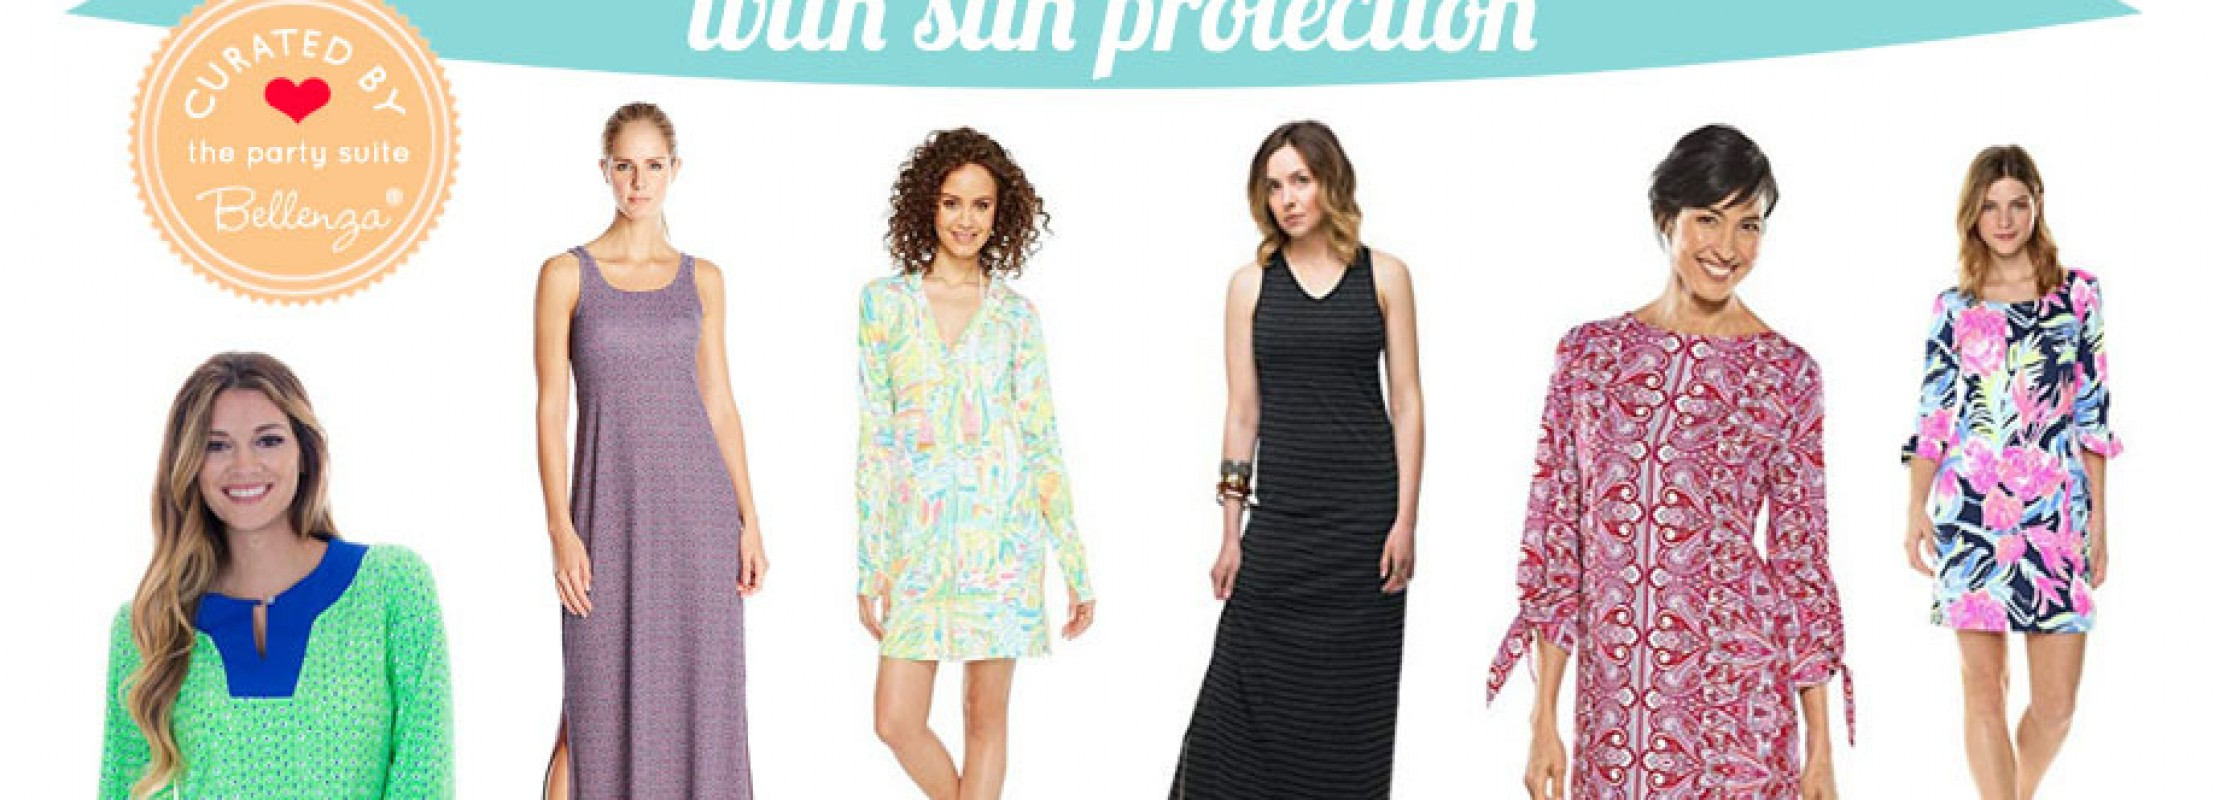 12 Stylish Summer Party Outfits with Sun Protection